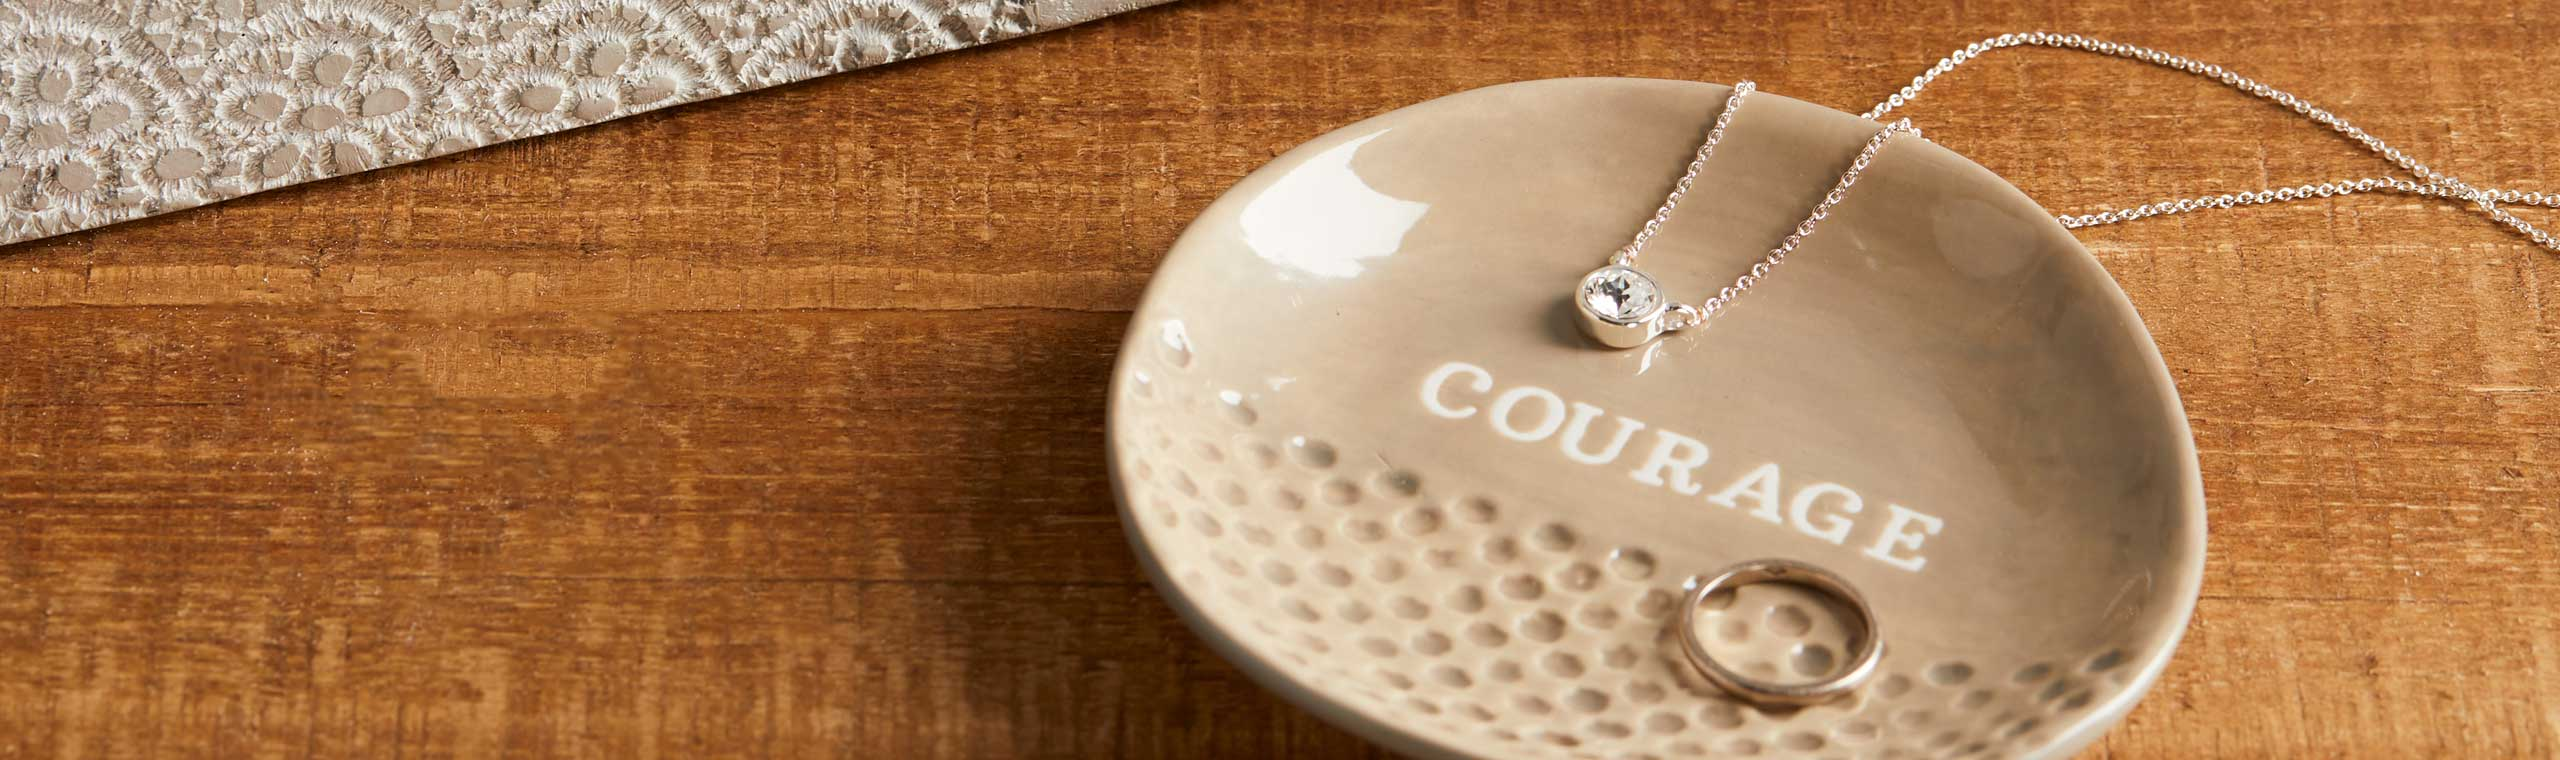 A photo of a jewelry keeper plate with the word courage printed on it and a ring laying inside